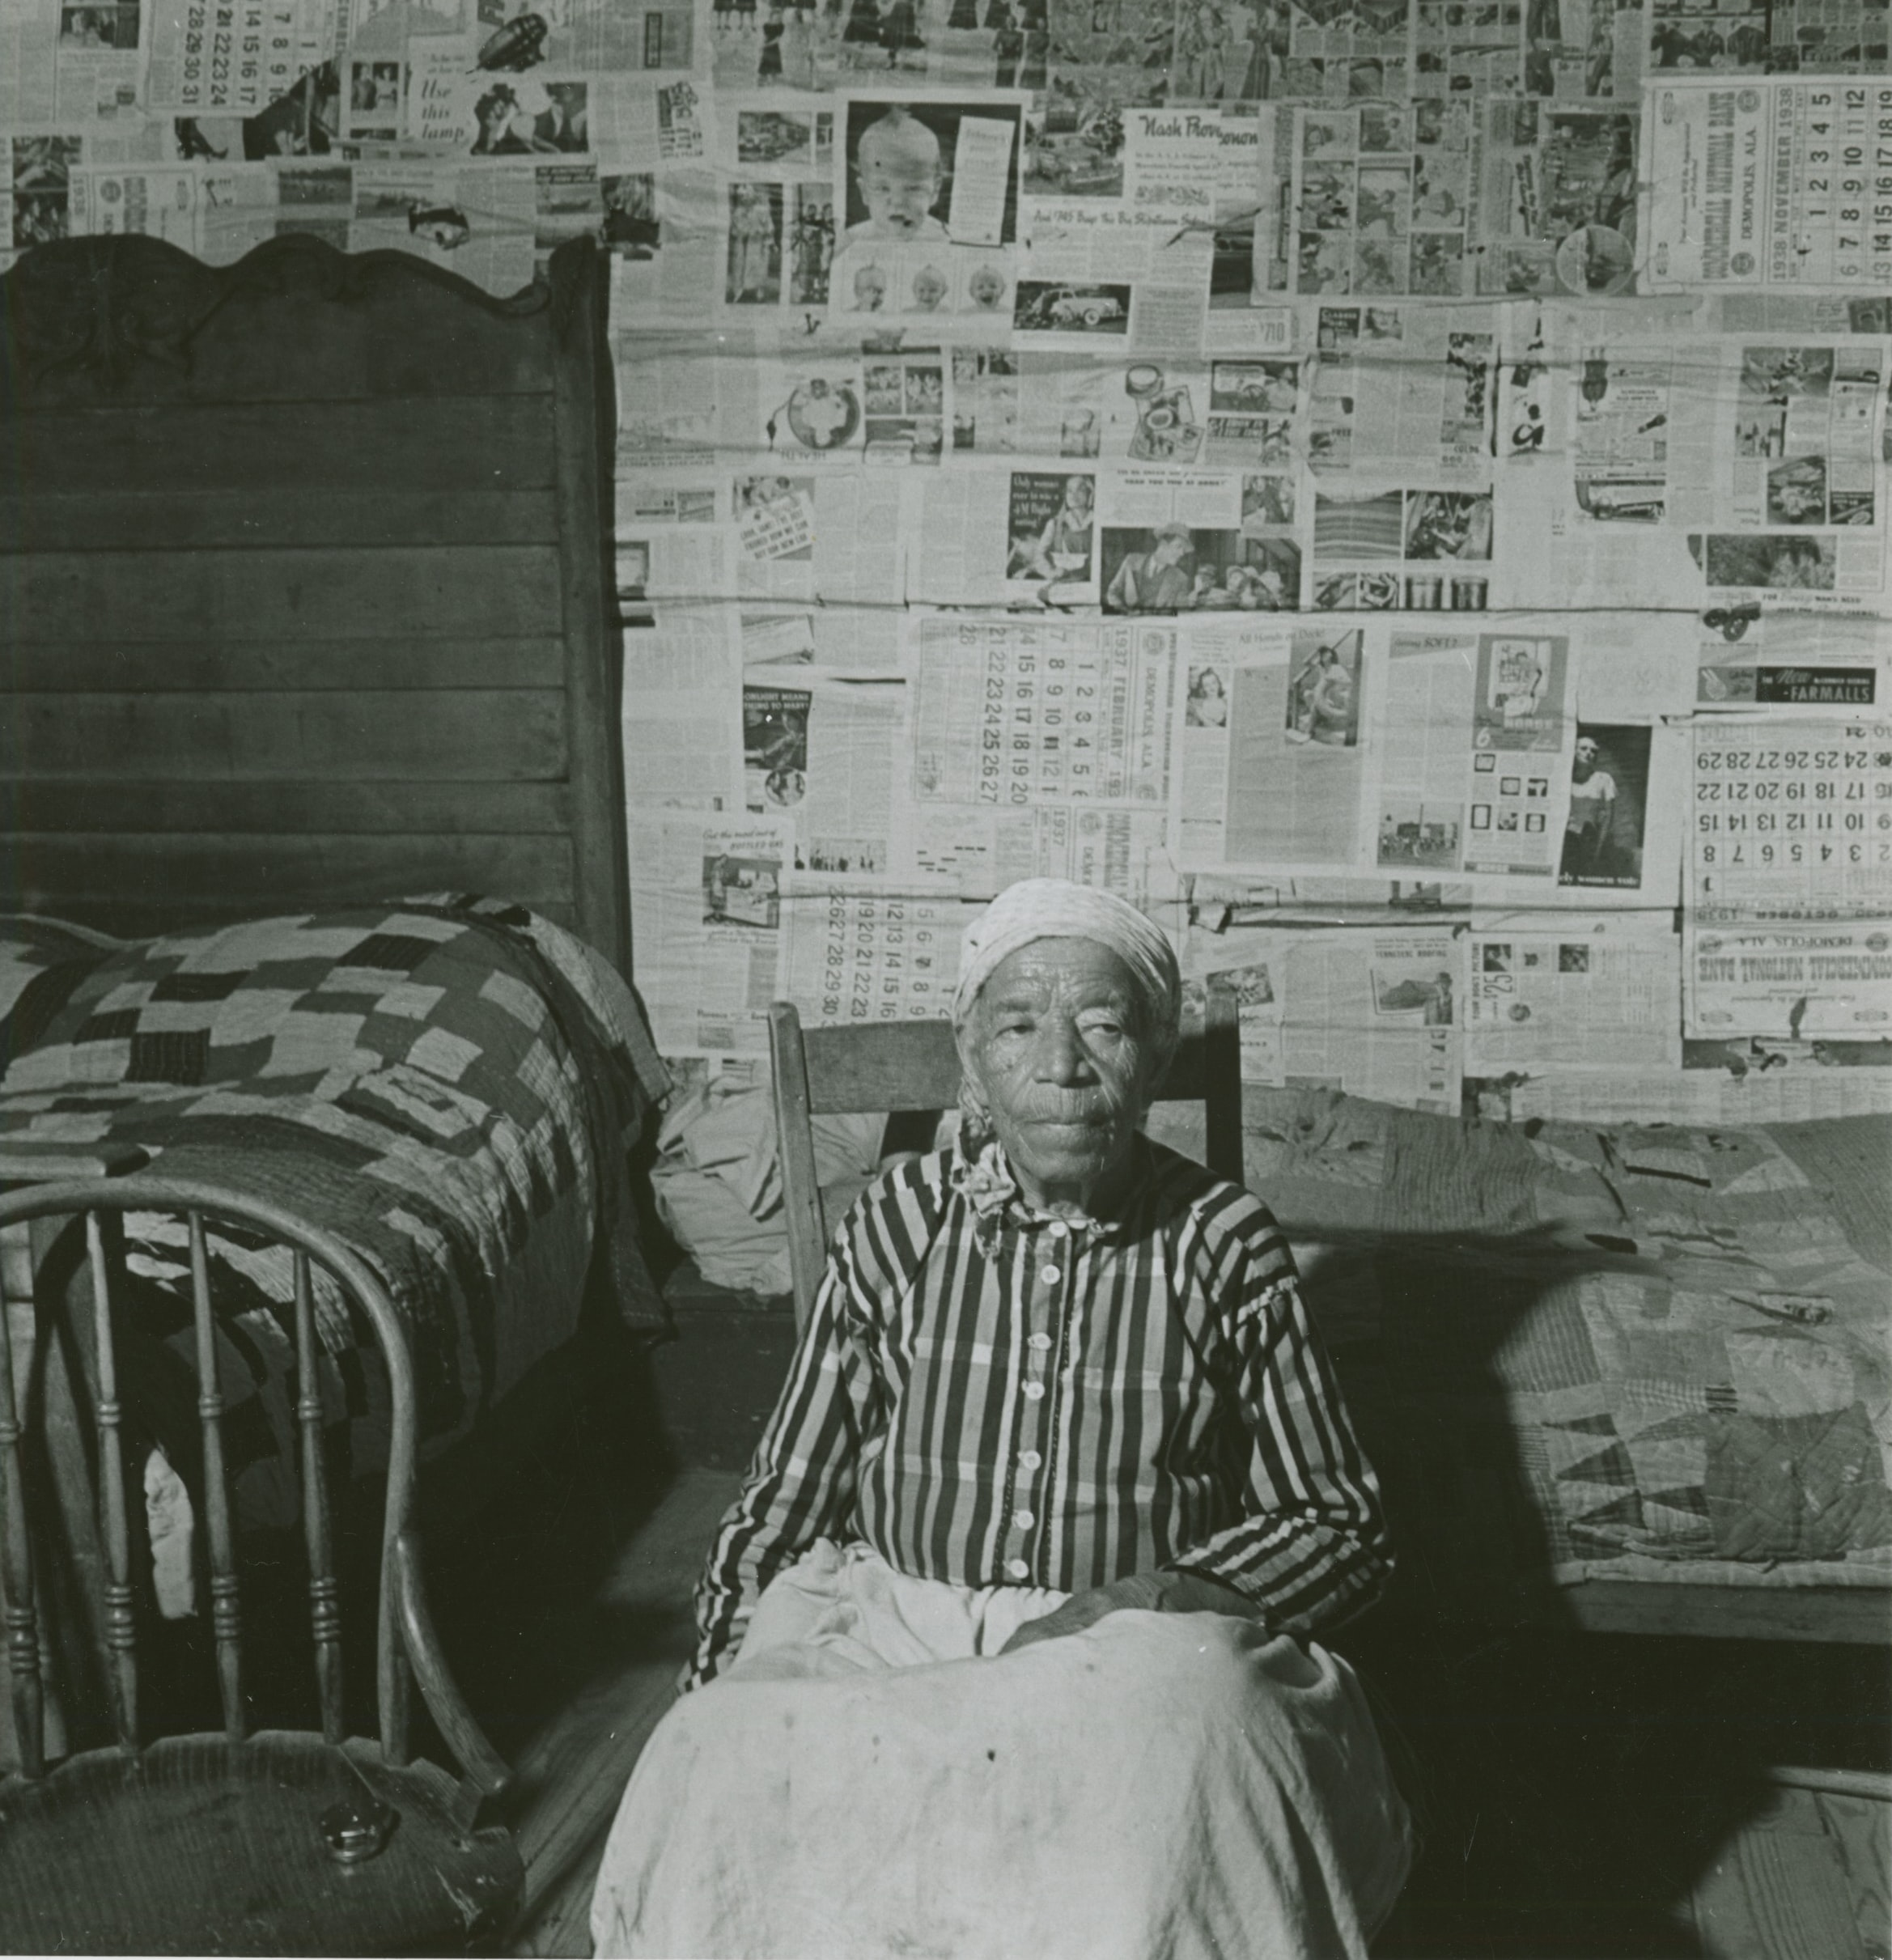 Black and white photo of an elderly mulatto woman in her house. She is sitting, and the wall behind her is lined with newspapers.